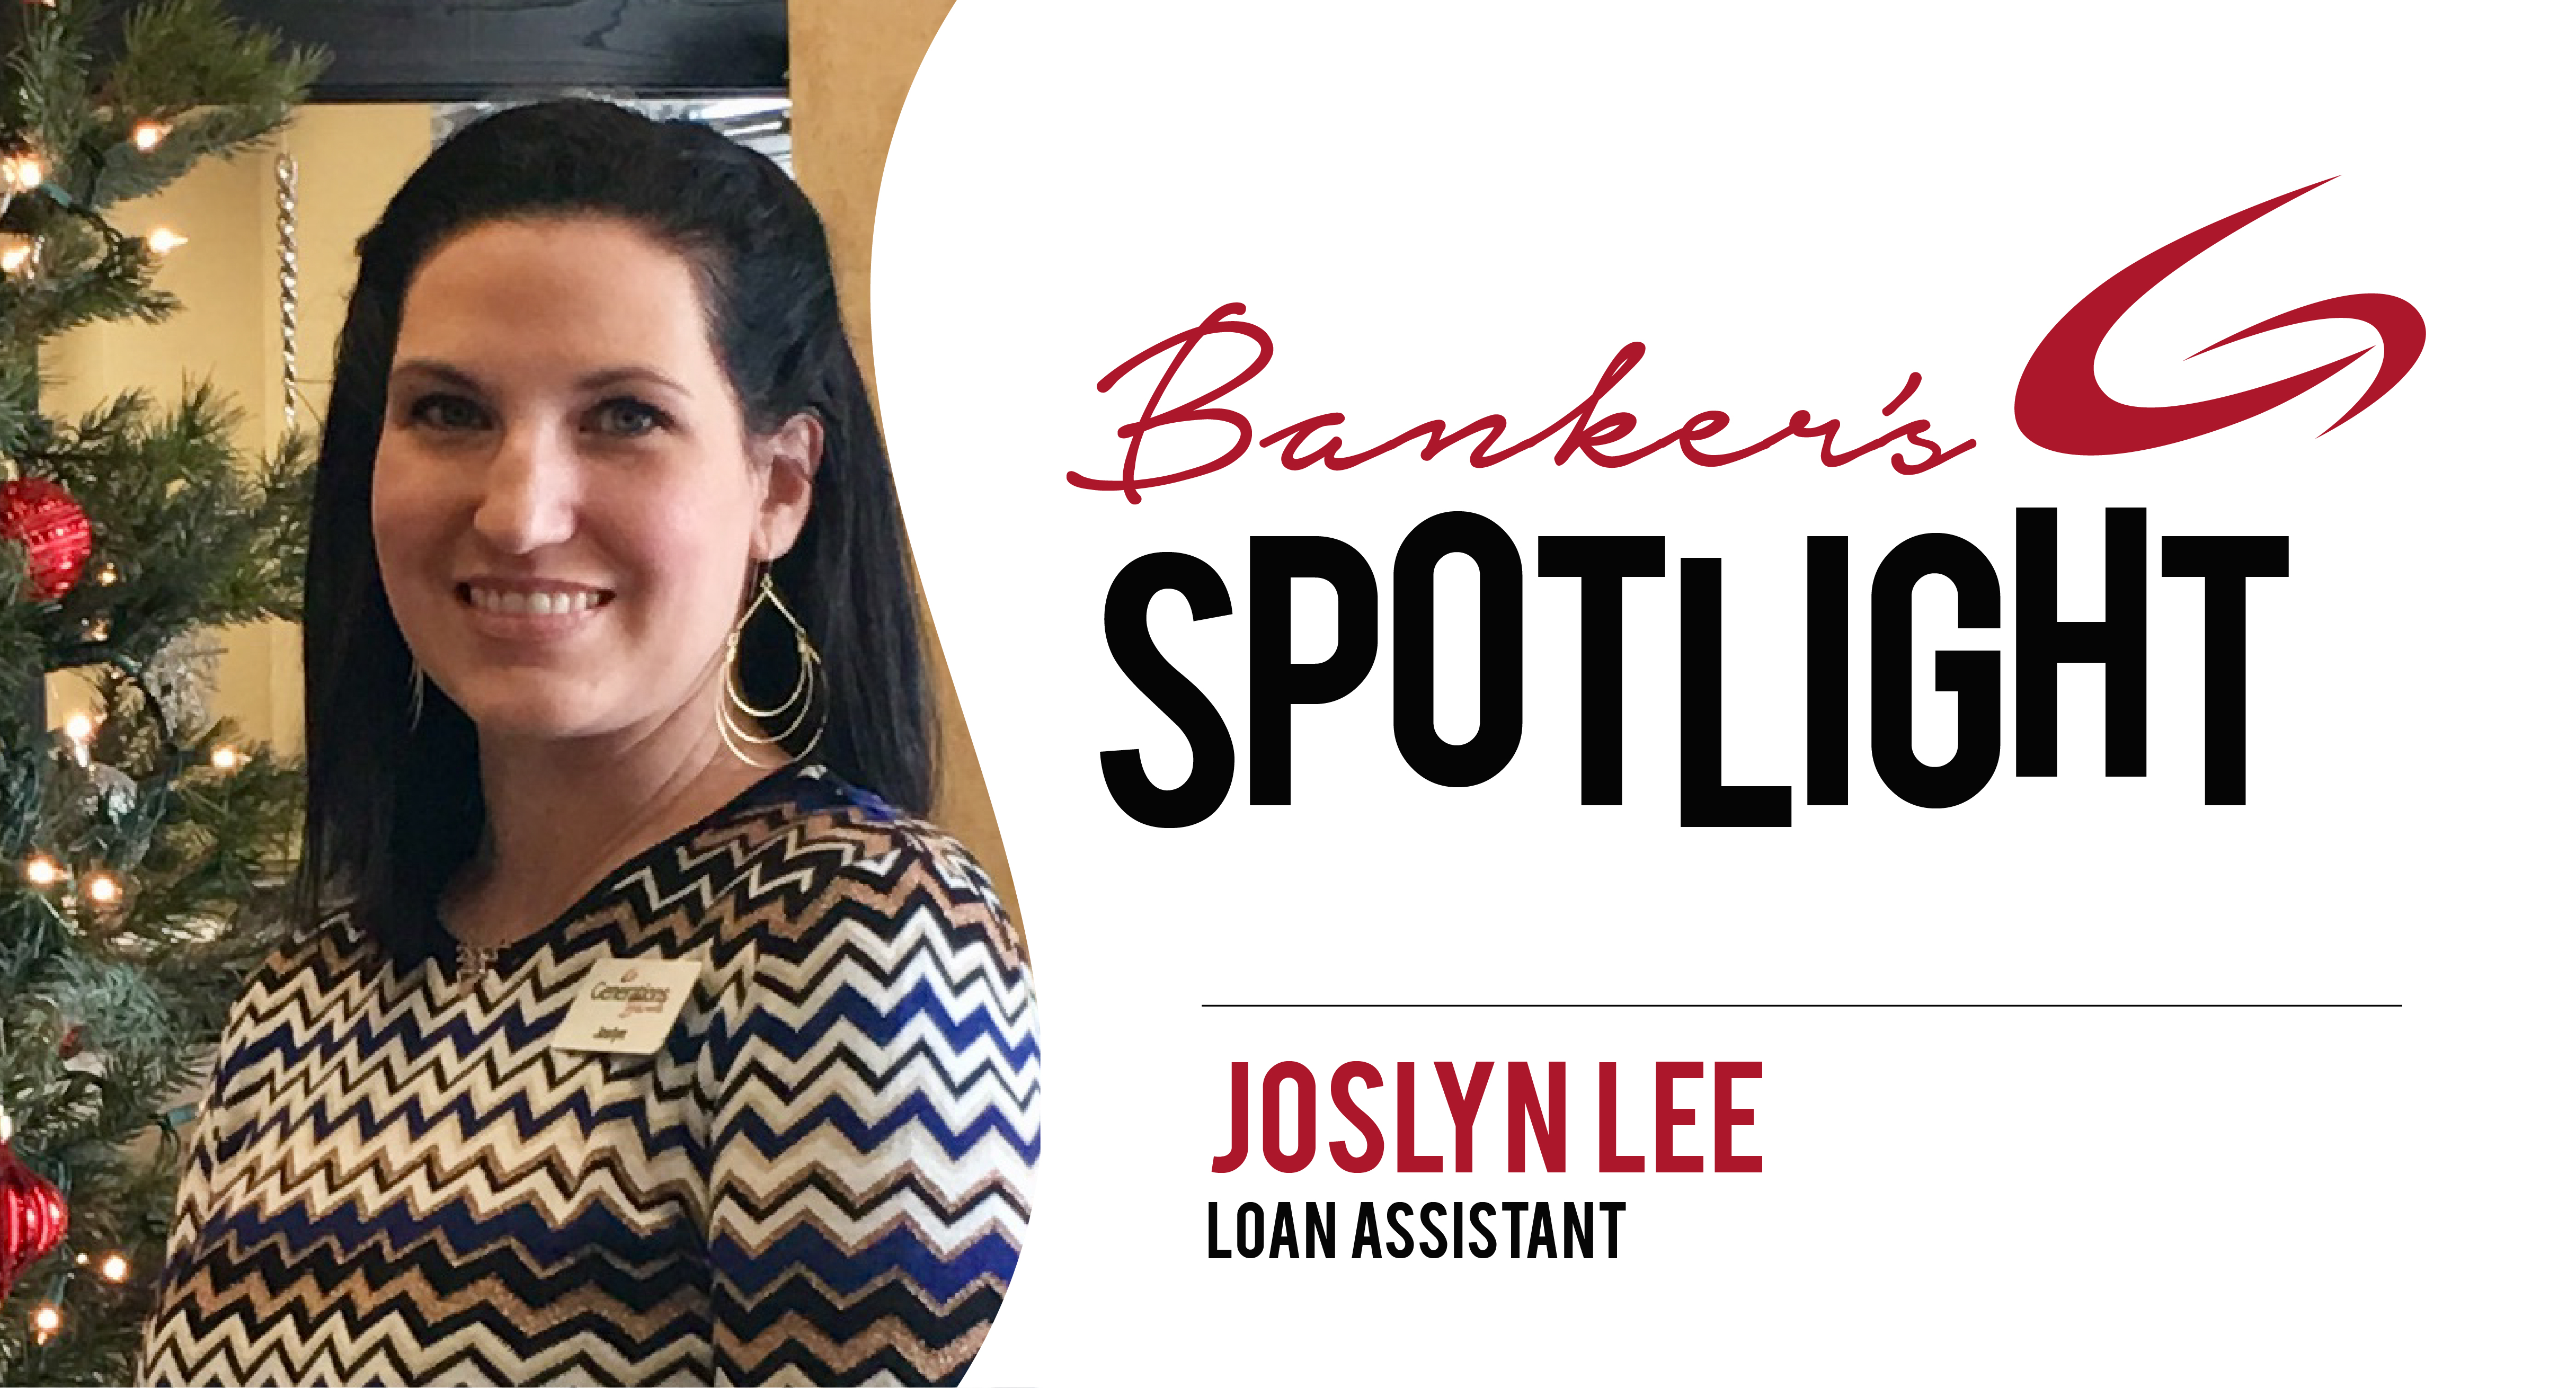 Banker's Spotlight - Joslyn Lee